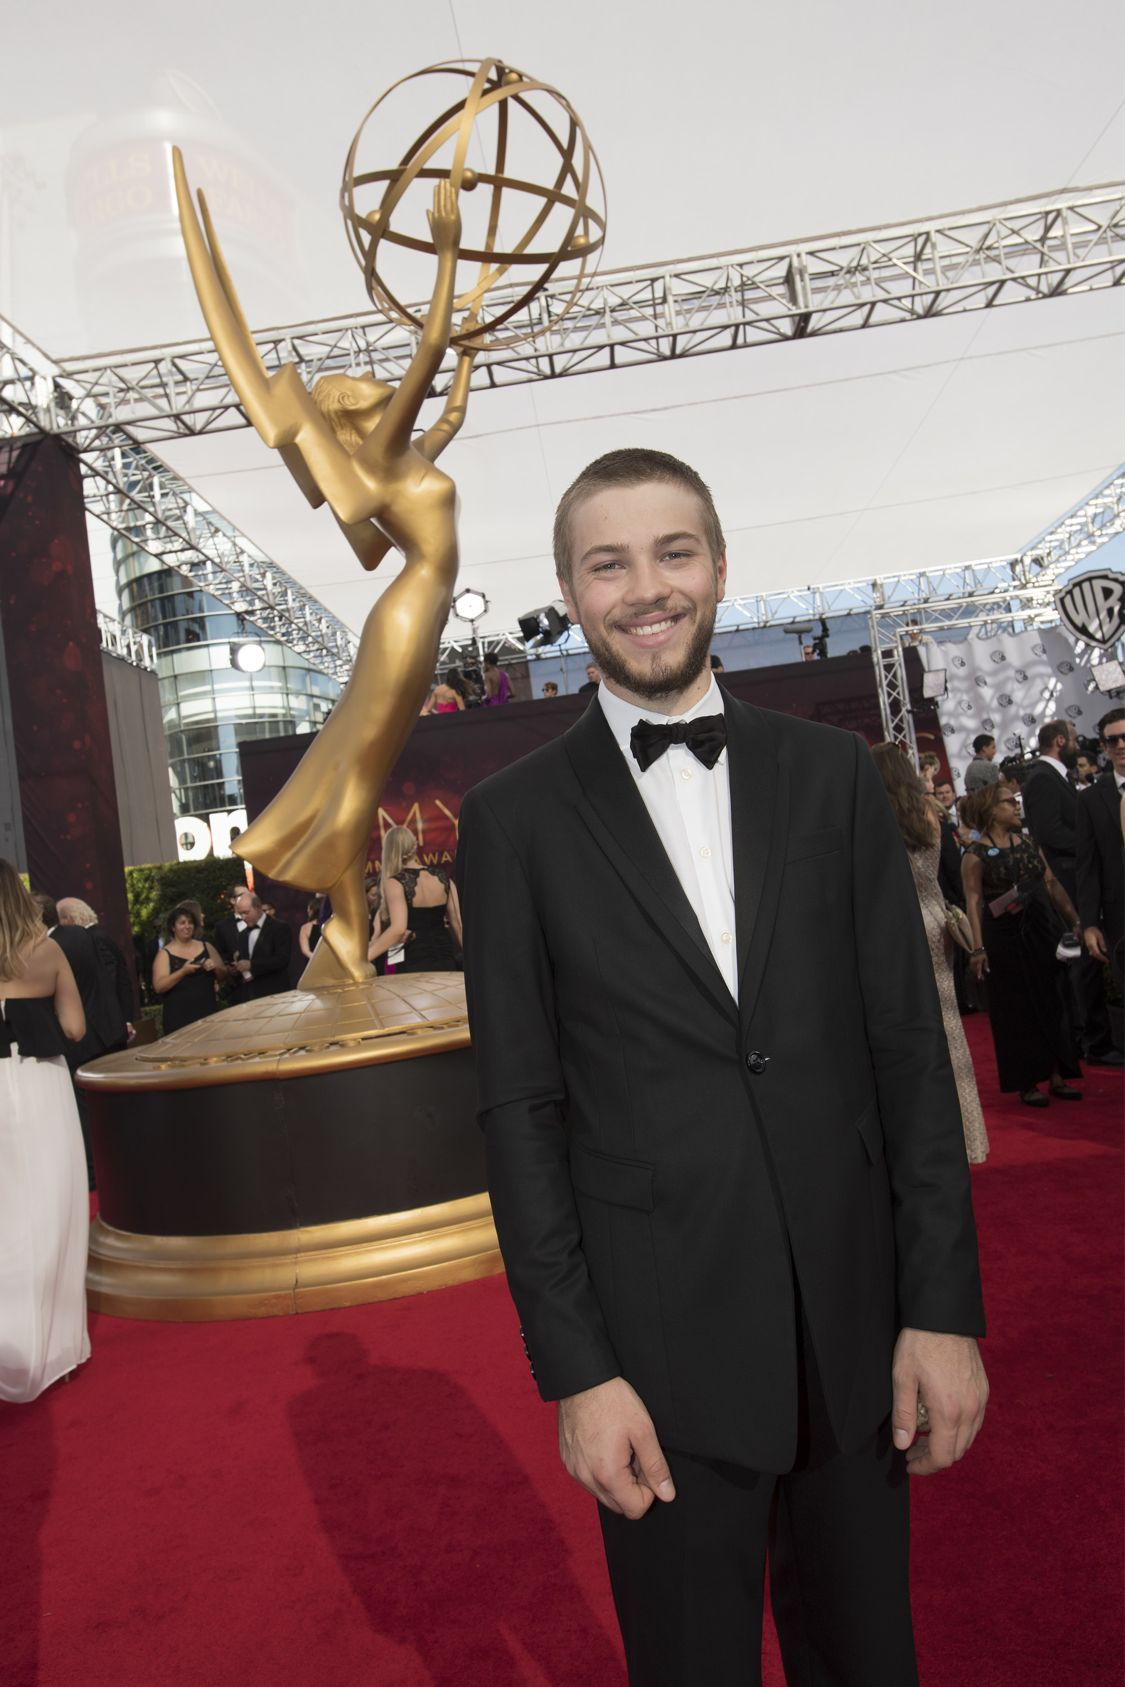 """THE 68TH EMMY(r) AWARDS - """"The 68th Emmy Awards"""" broadcasts live from The Microsoft Theater in Los Angeles, Sunday, September 18 (7:00-11:00 p.m. EDT/4:00-8:00 p.m. PDT), on ABC and is hosted by Jimmy Kimmel. (ABC/Image Group LA) CONNOR JESSUP"""